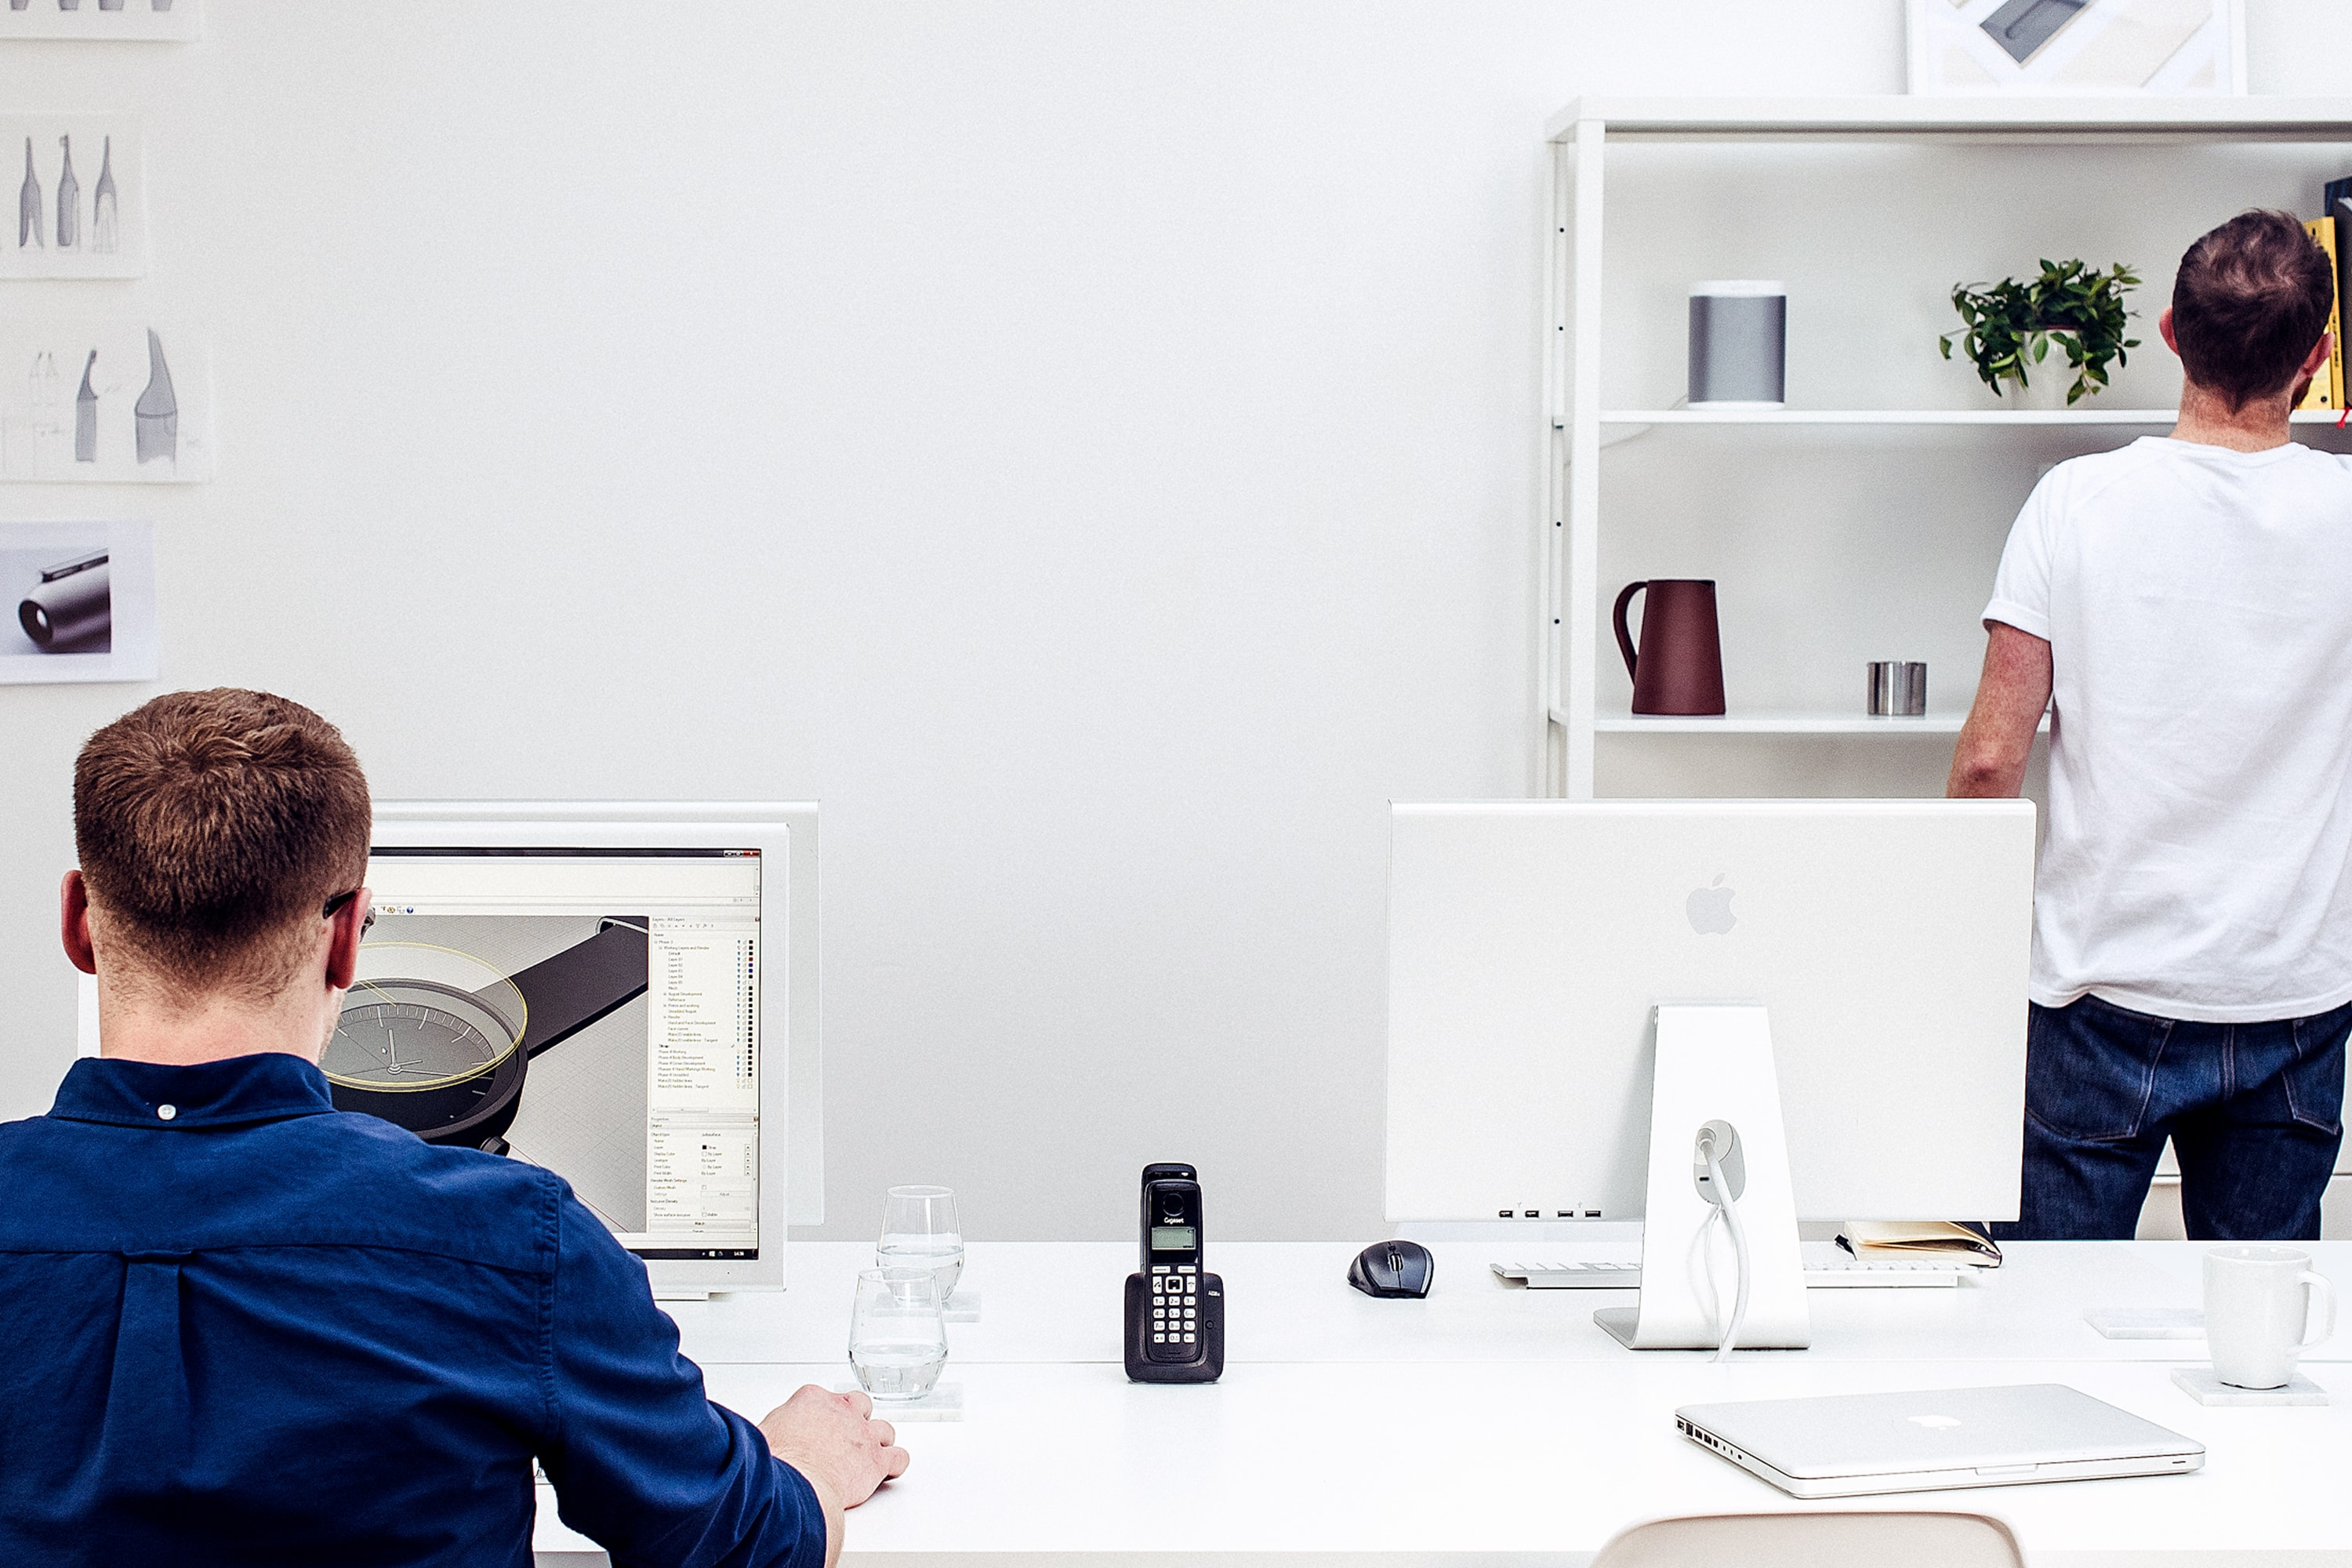 The image shows people working in a design studio. There are several computers on desks and a man working on CAD software. Another man is looking at the shelves in the bacground. the shelves have several objects on them such as a speaker, a jug, a plant. On the desk is a phone, laptop, mug and glasses filled with water. On the wall in the background are some sketches.